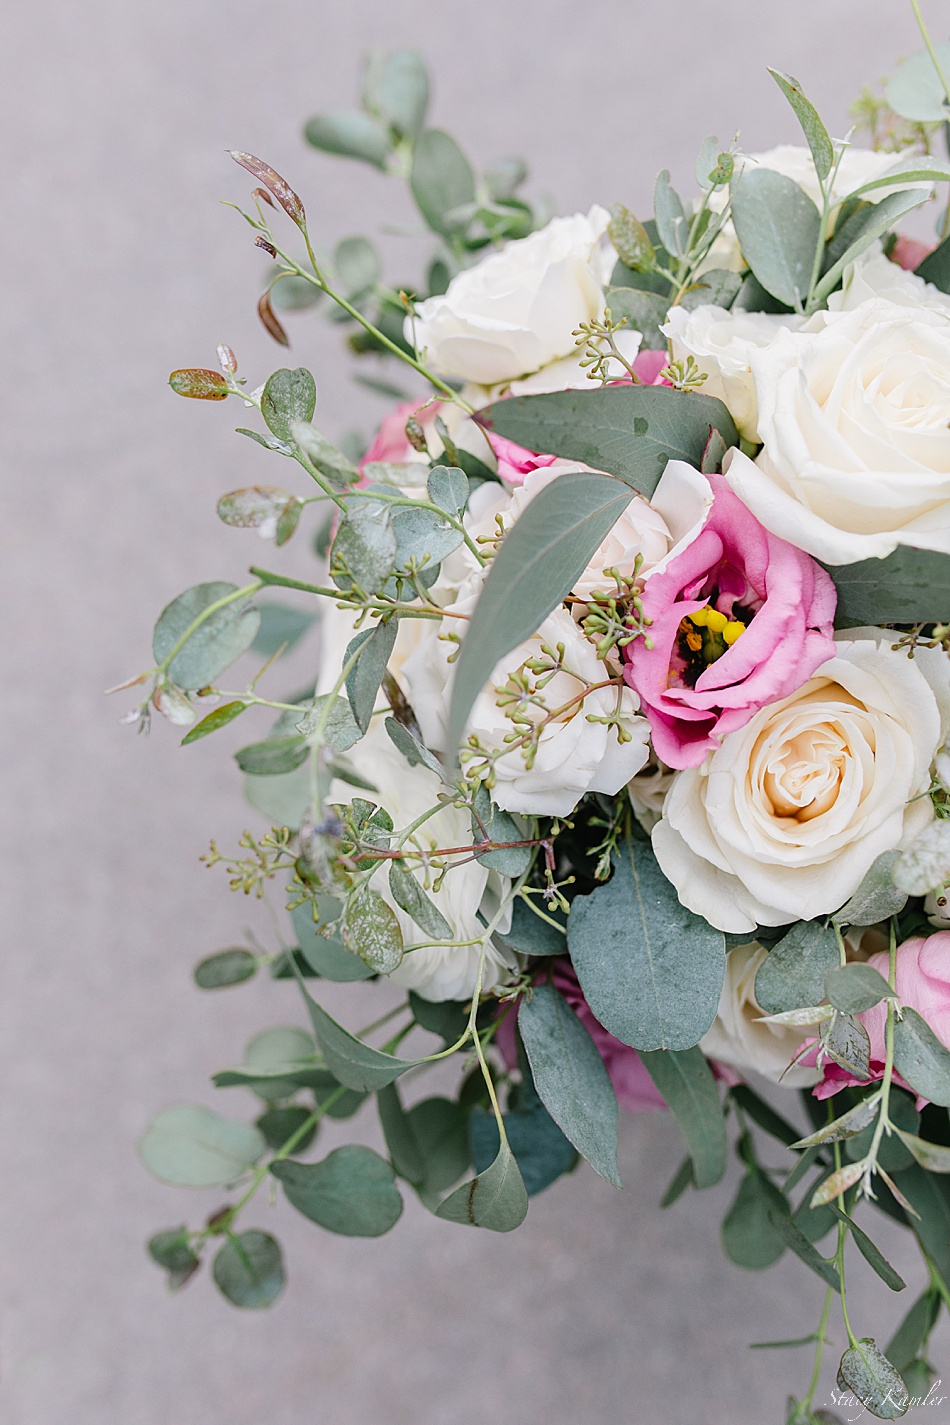 Bridal Bouquet made by Geneva Floral